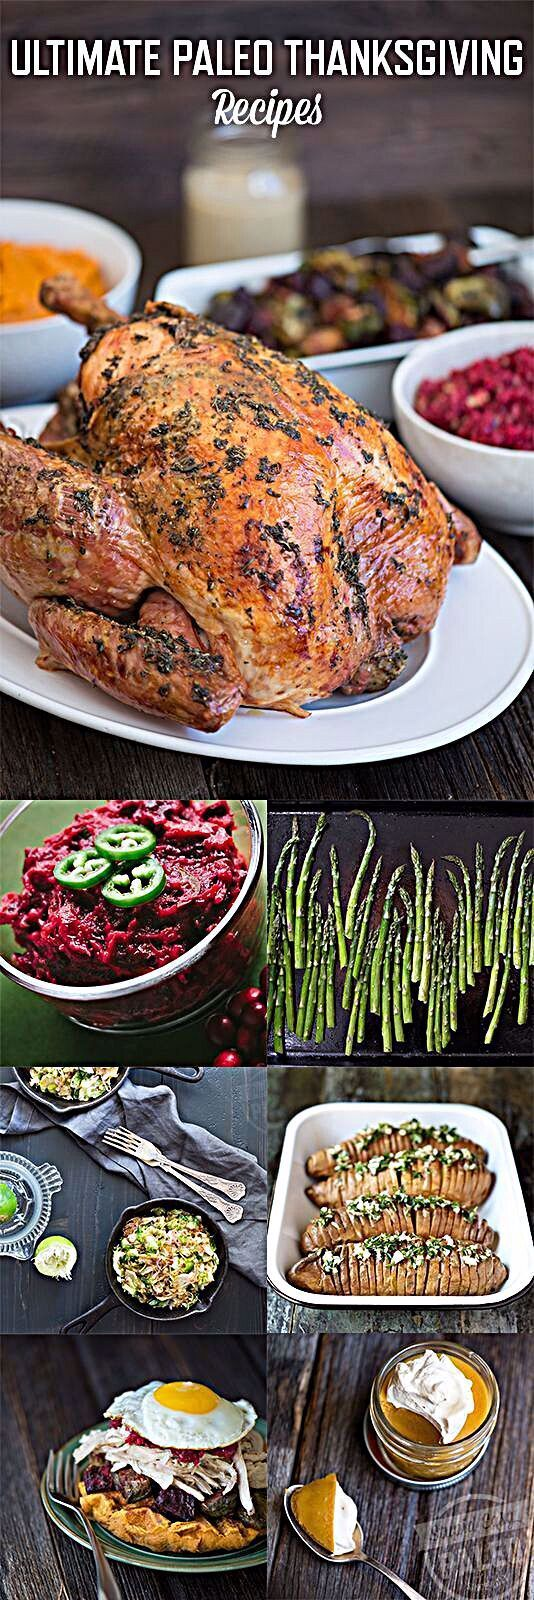 Get my Ultimate Paleo Thanksgiving recipes compilation Celebrate the holiday with your favorite glutenfree healthy Thanksgiving recipes Ultimate Paleo Thanksgiving Recipe...